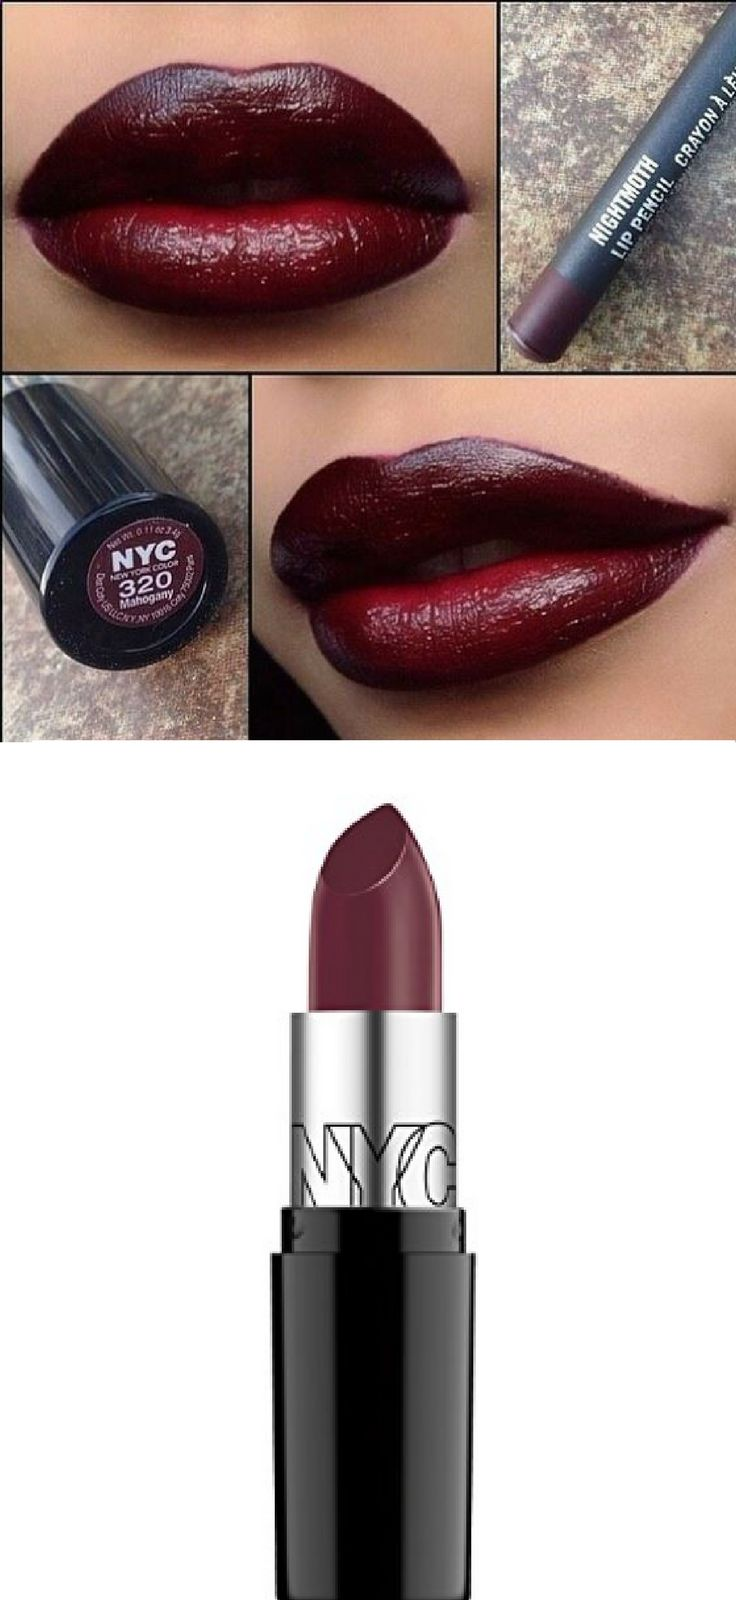 nyc 320 mahogany lipstick nightmoth lip pencil African American makeup